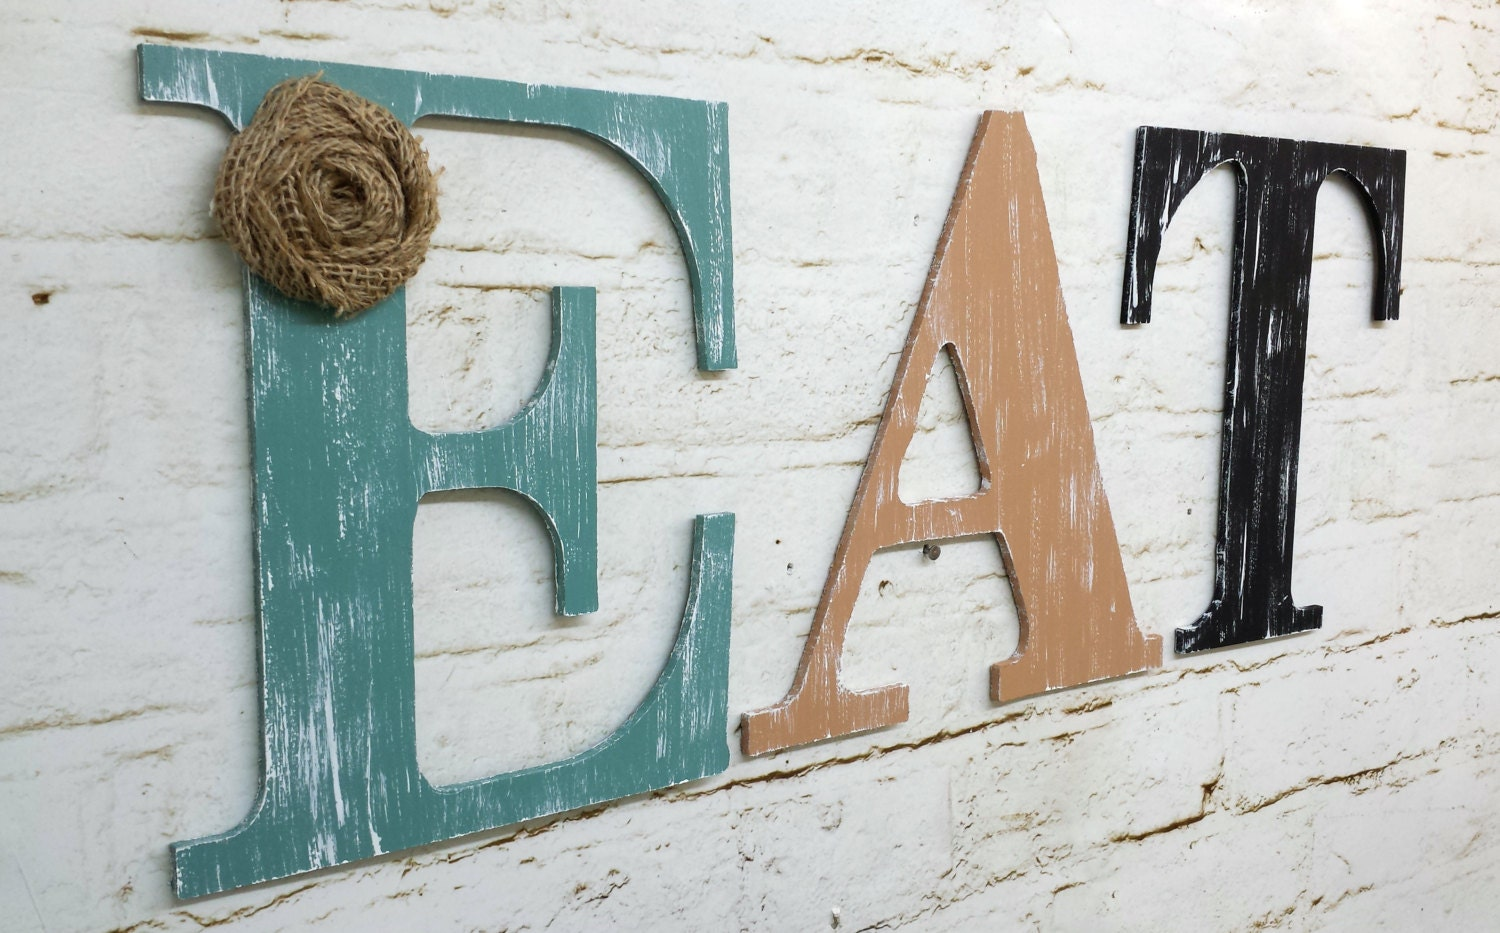 Rustic chic wooden letter eat kitchen home decor wall hanging for Kitchen letters decoration